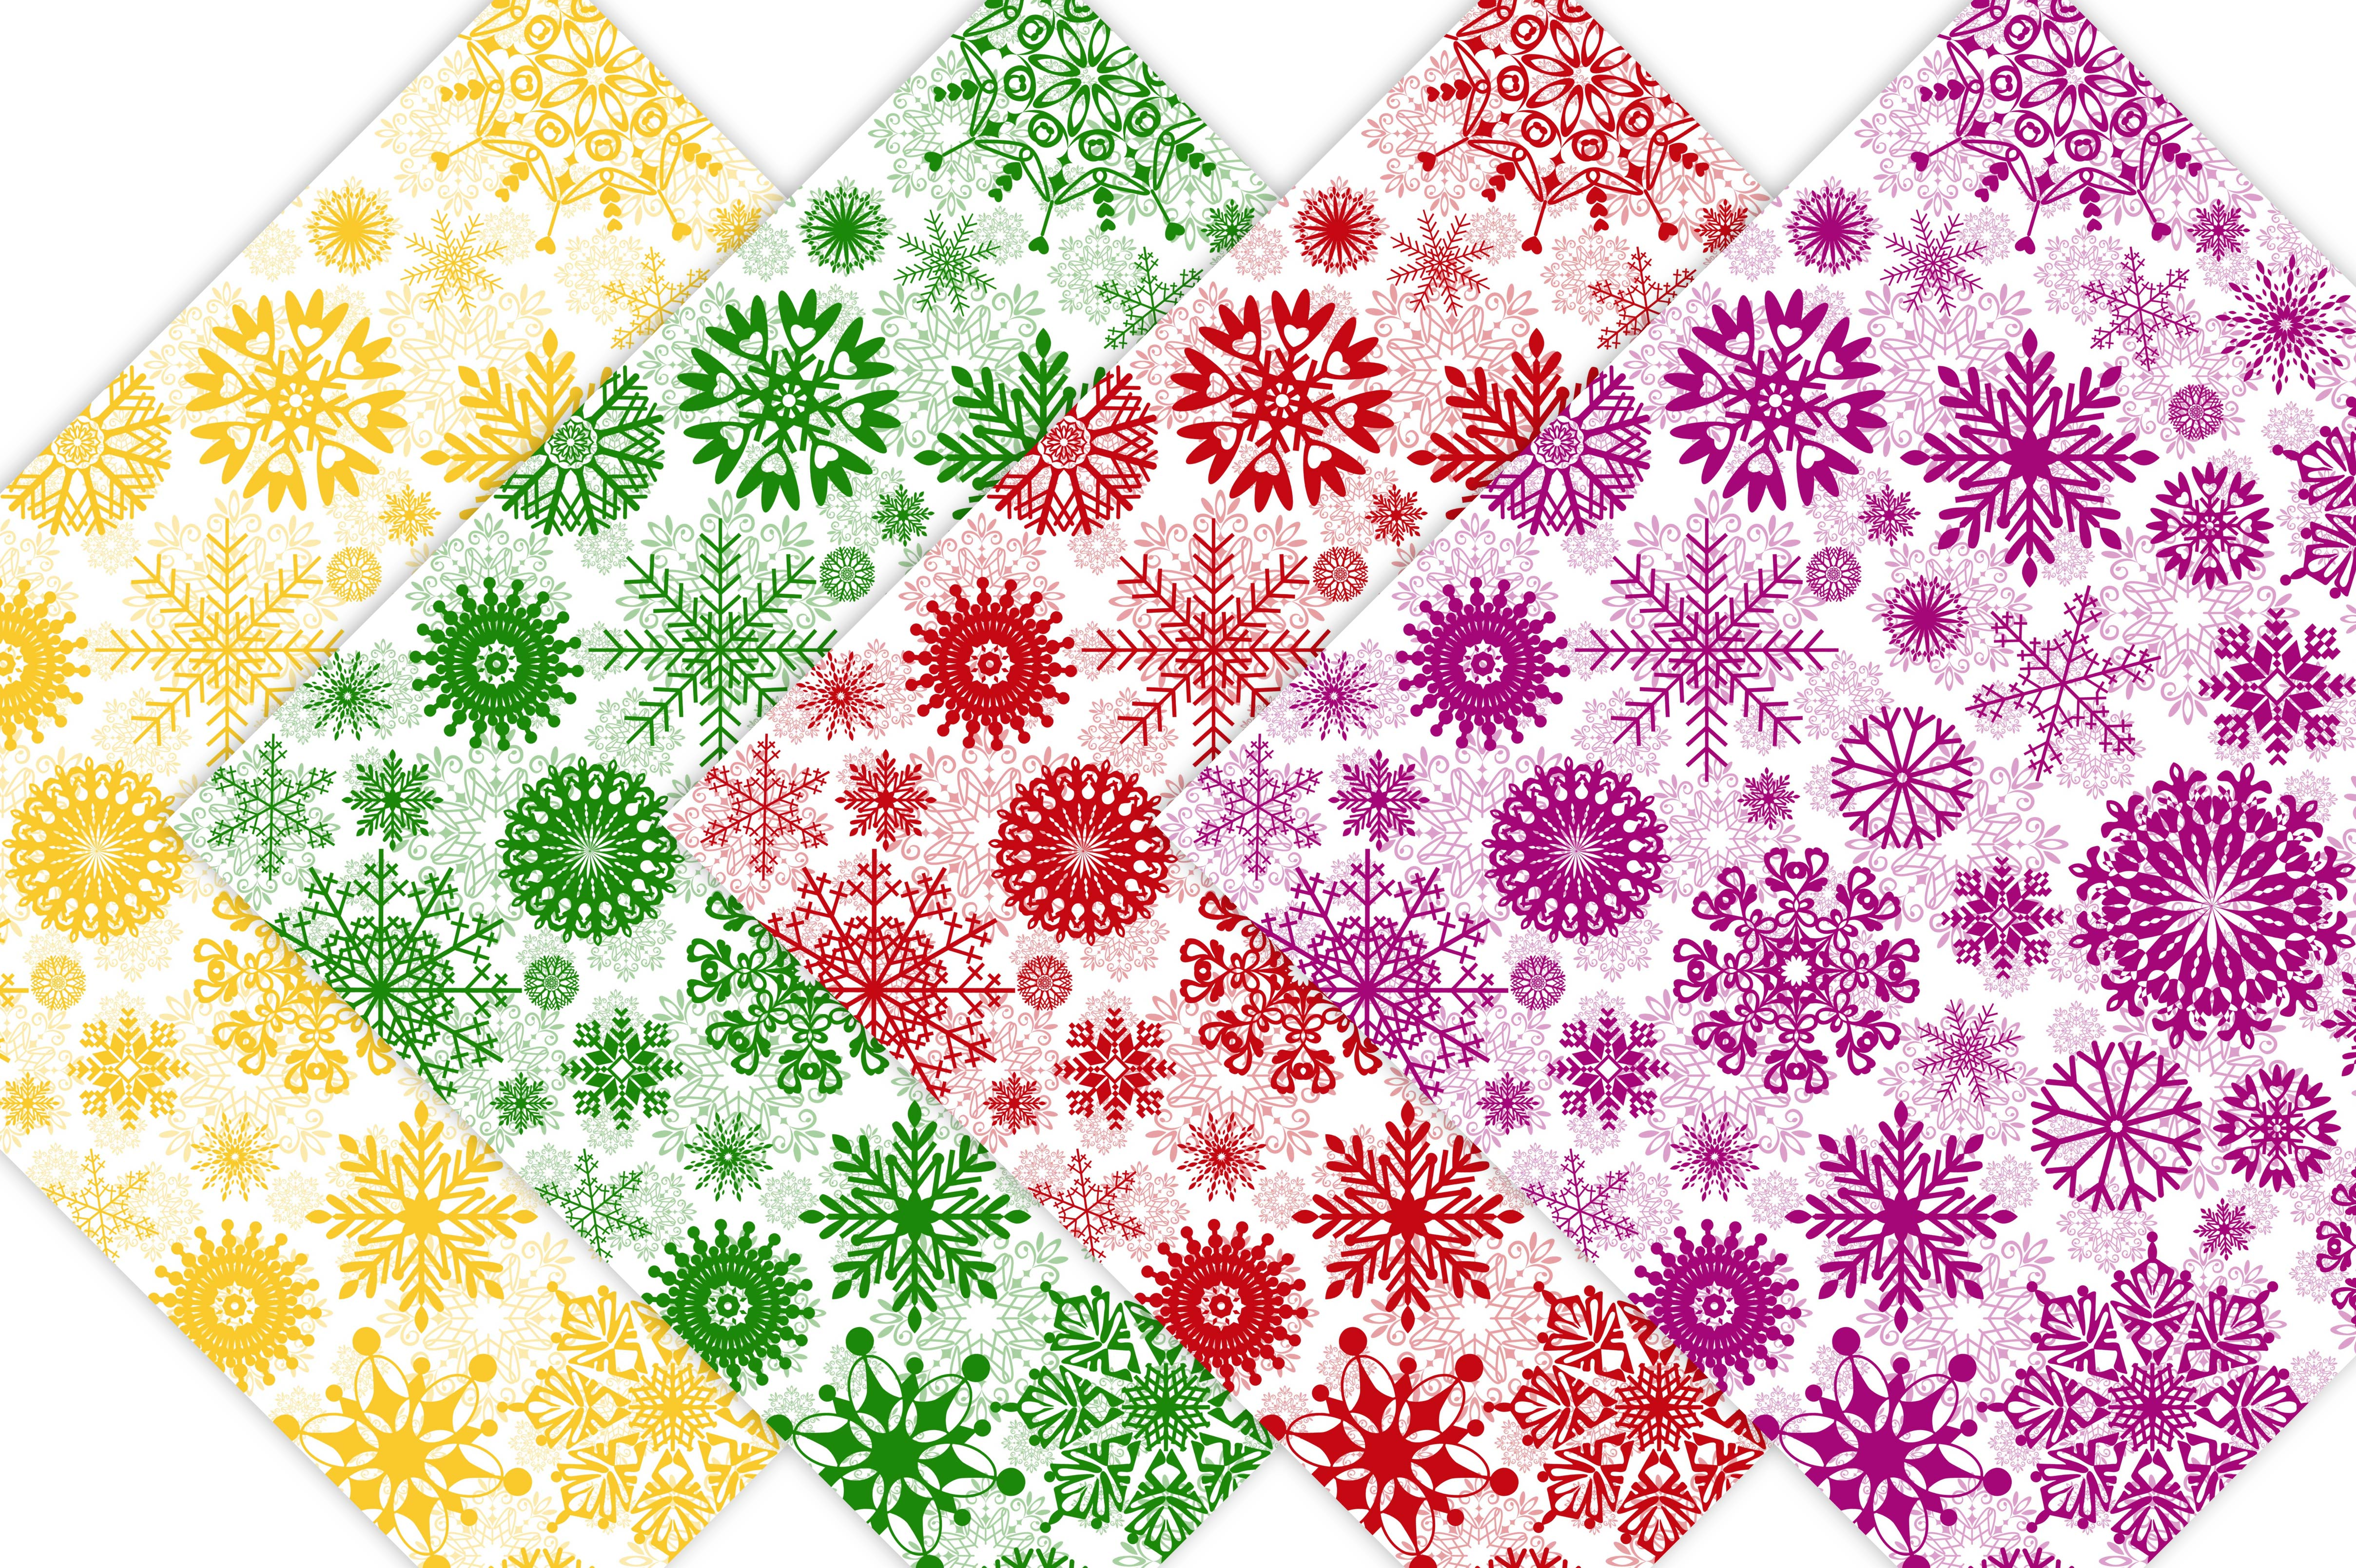 Winter Digital Paper Pack - Snowflake Patterns example image 3